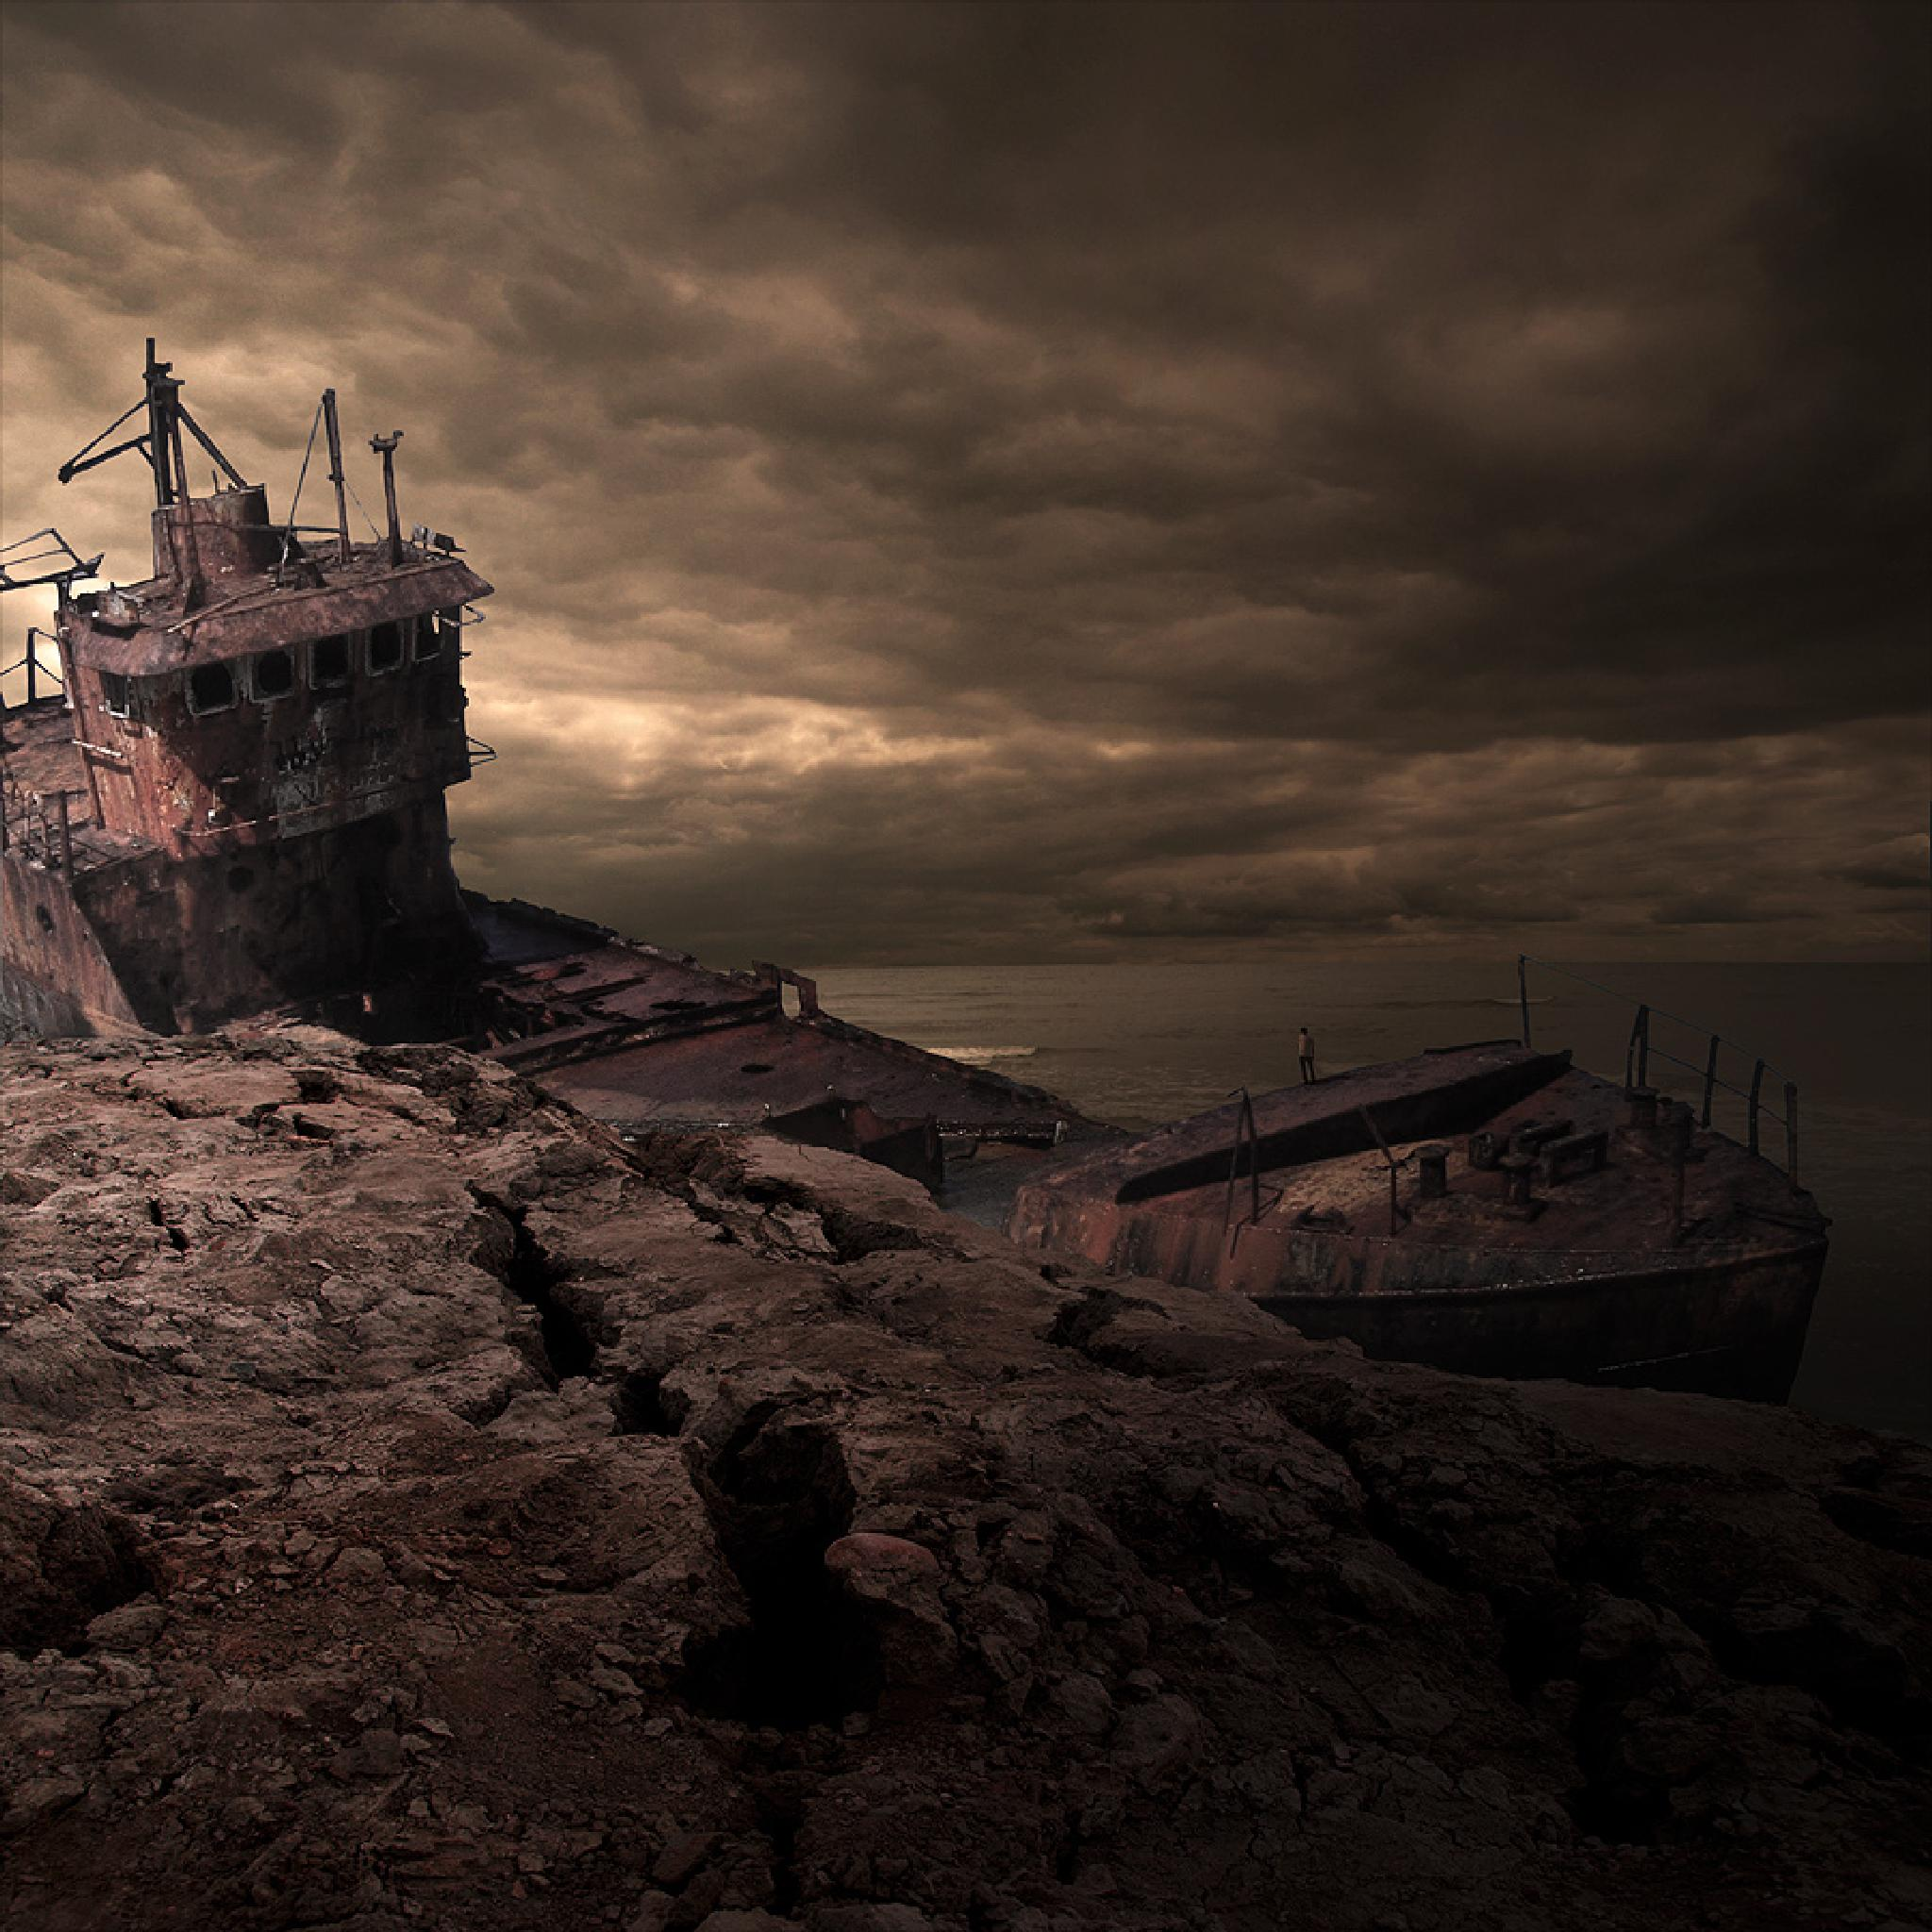 Haunted wreck by Tom